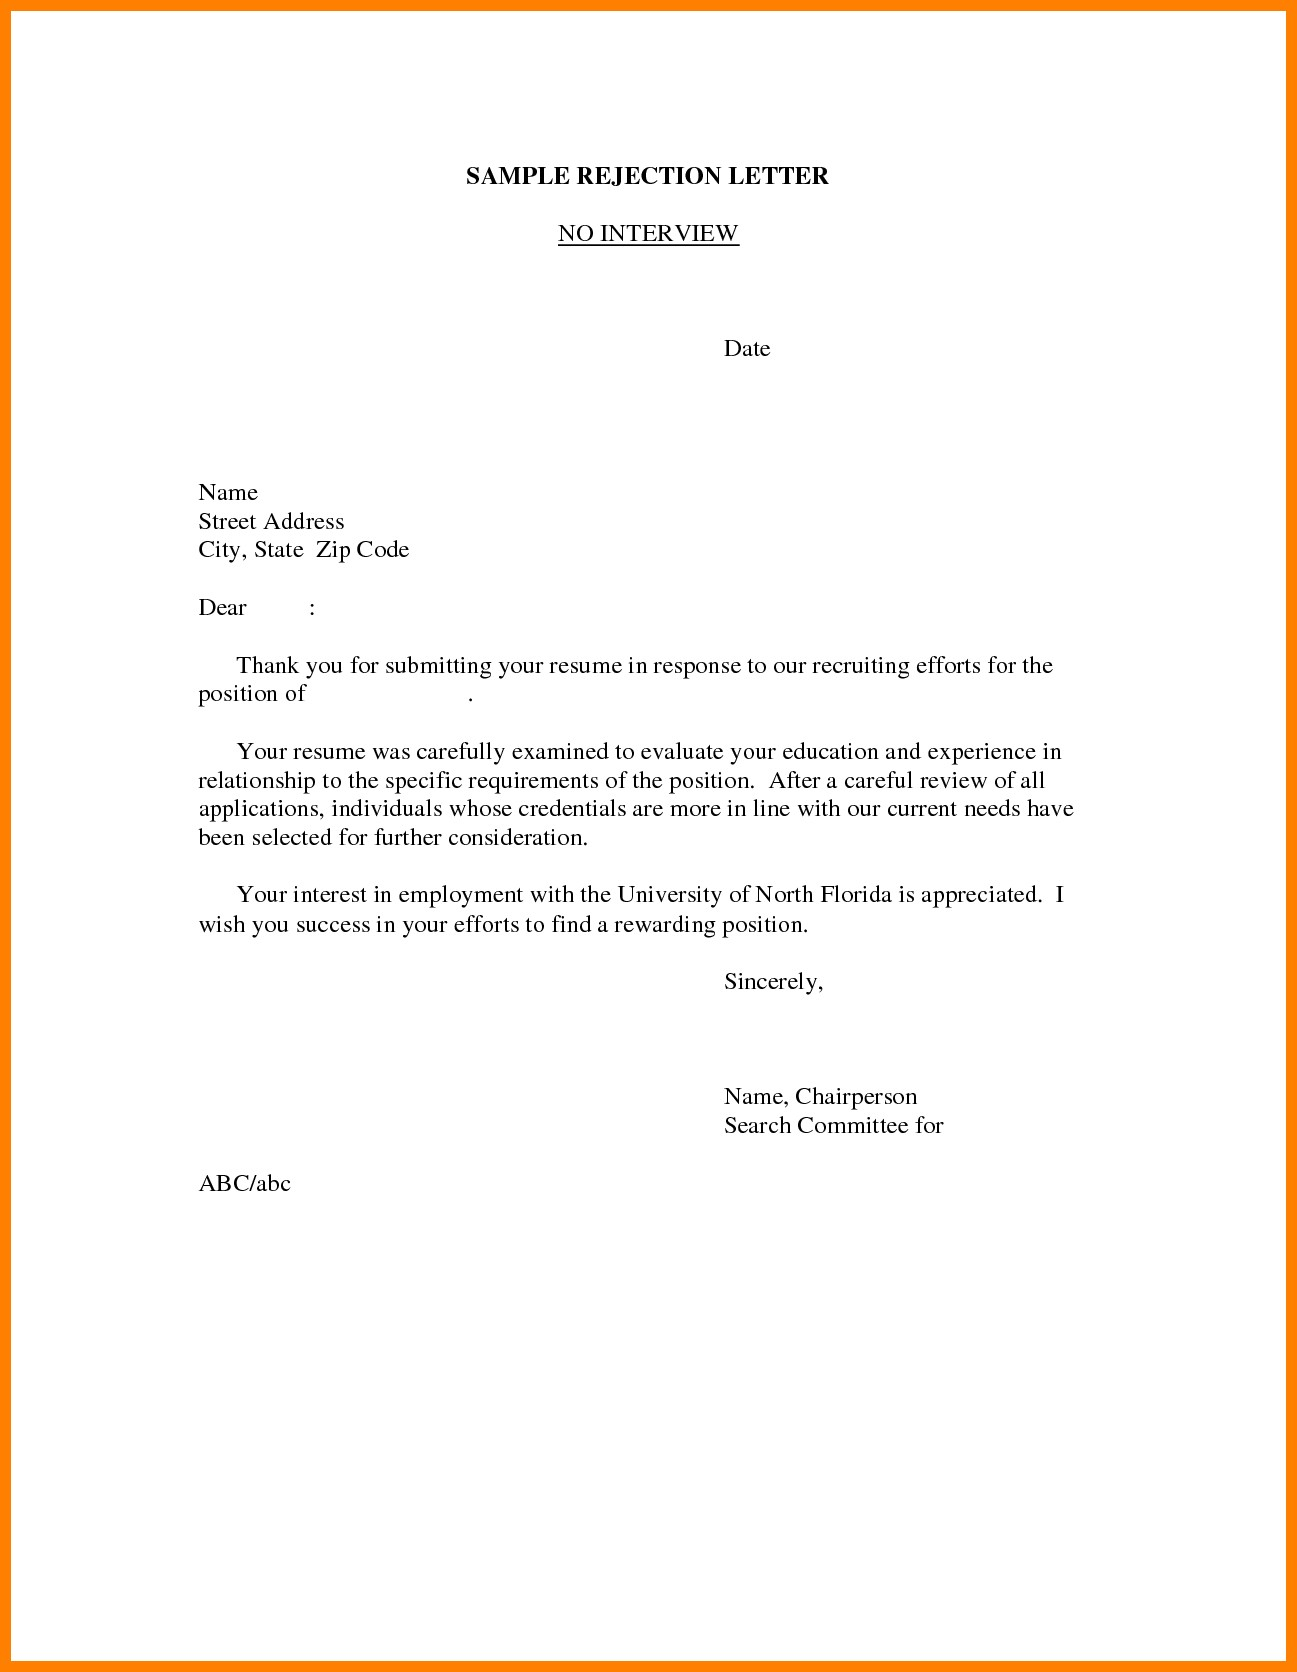 Rejection Letter Template after Interview - Save Reply to A Job Application Regret Letter Sample